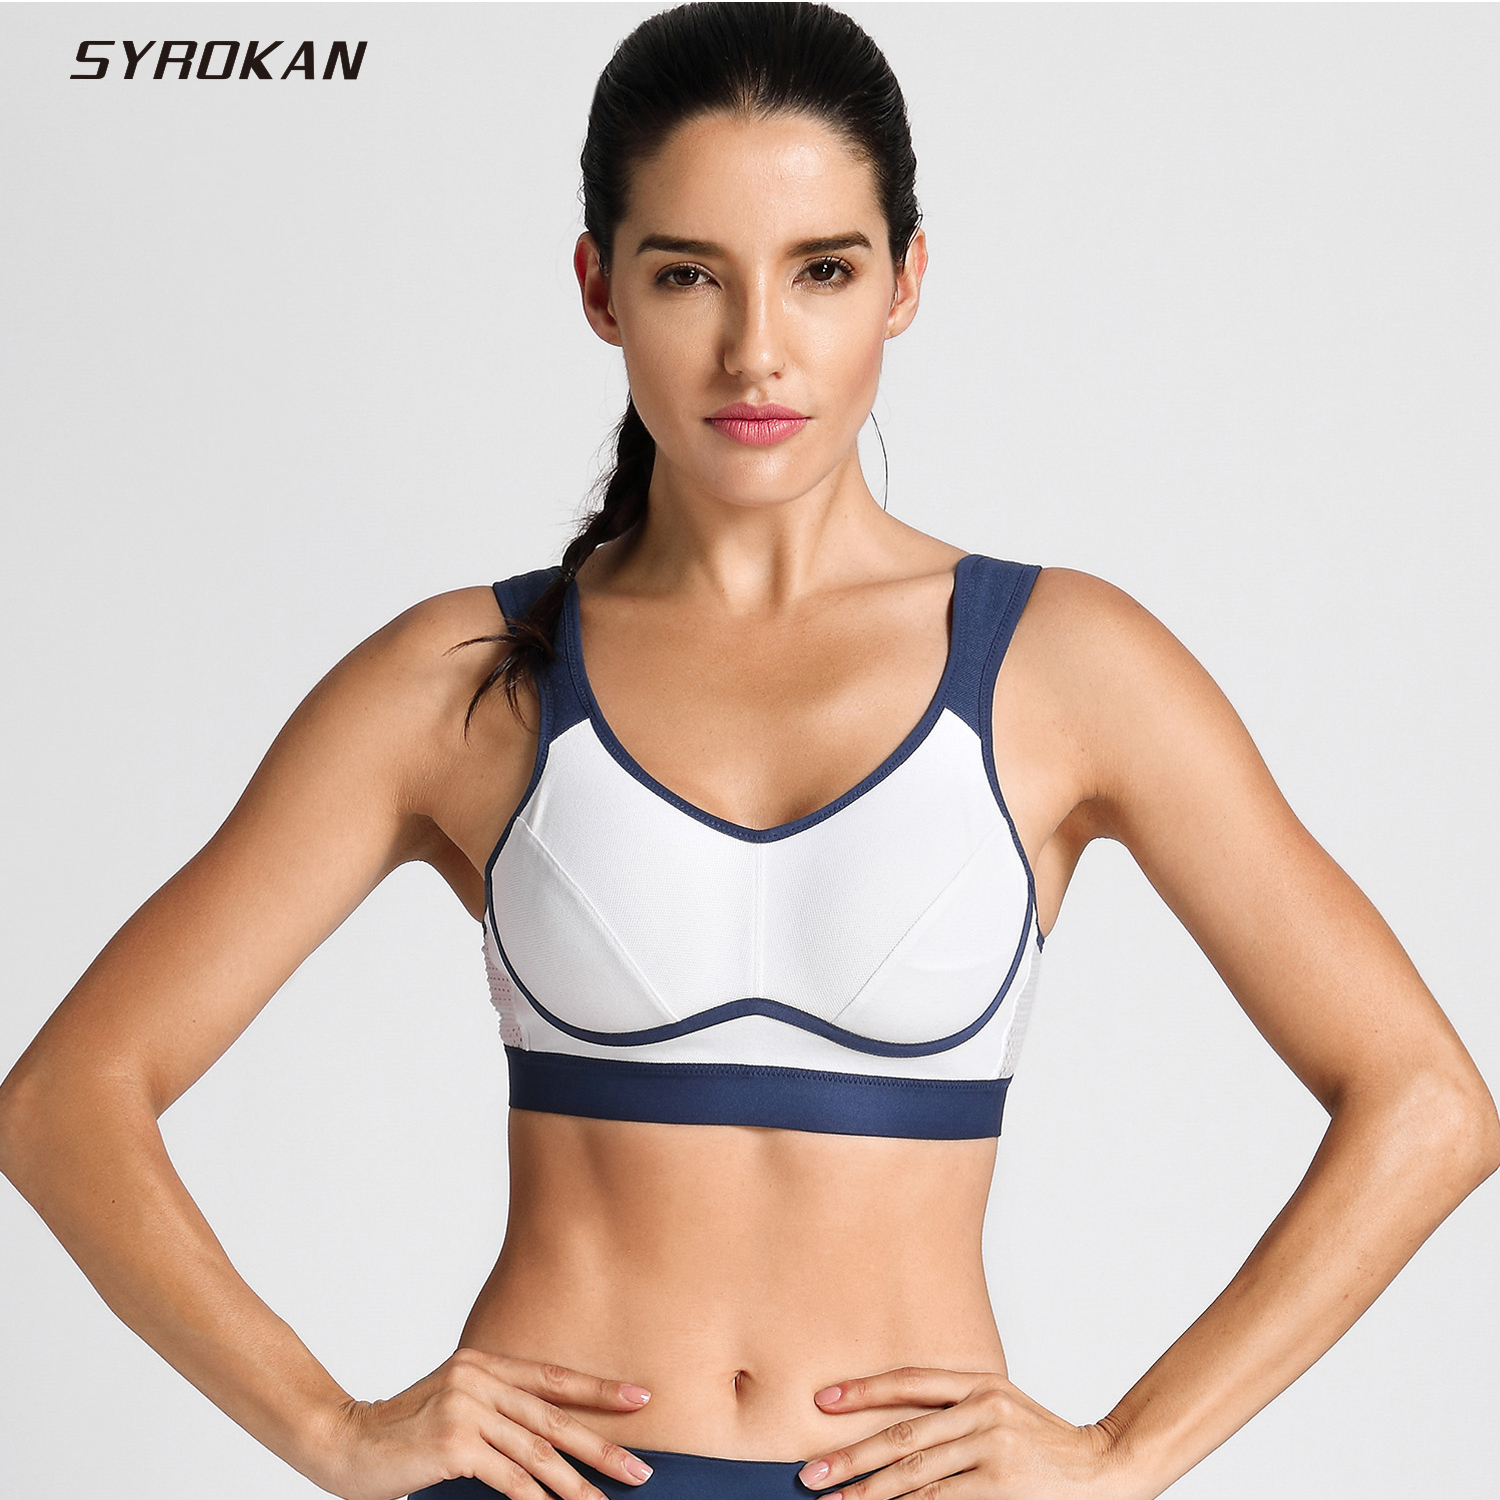 Women's High Impact Support Bounce Control Workout Plus Size Sports Bra